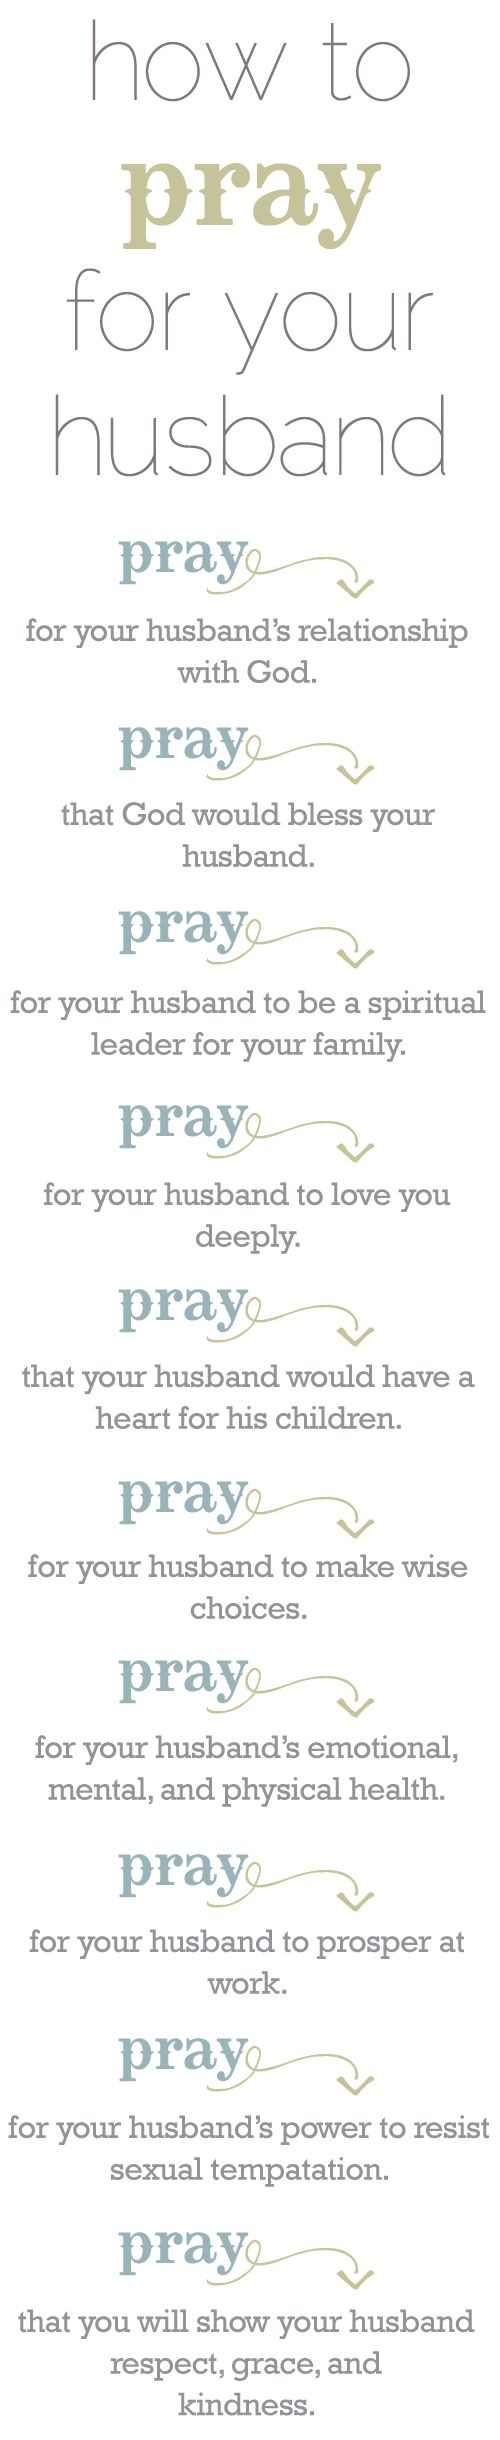 Good prayer ideas for me for my husband